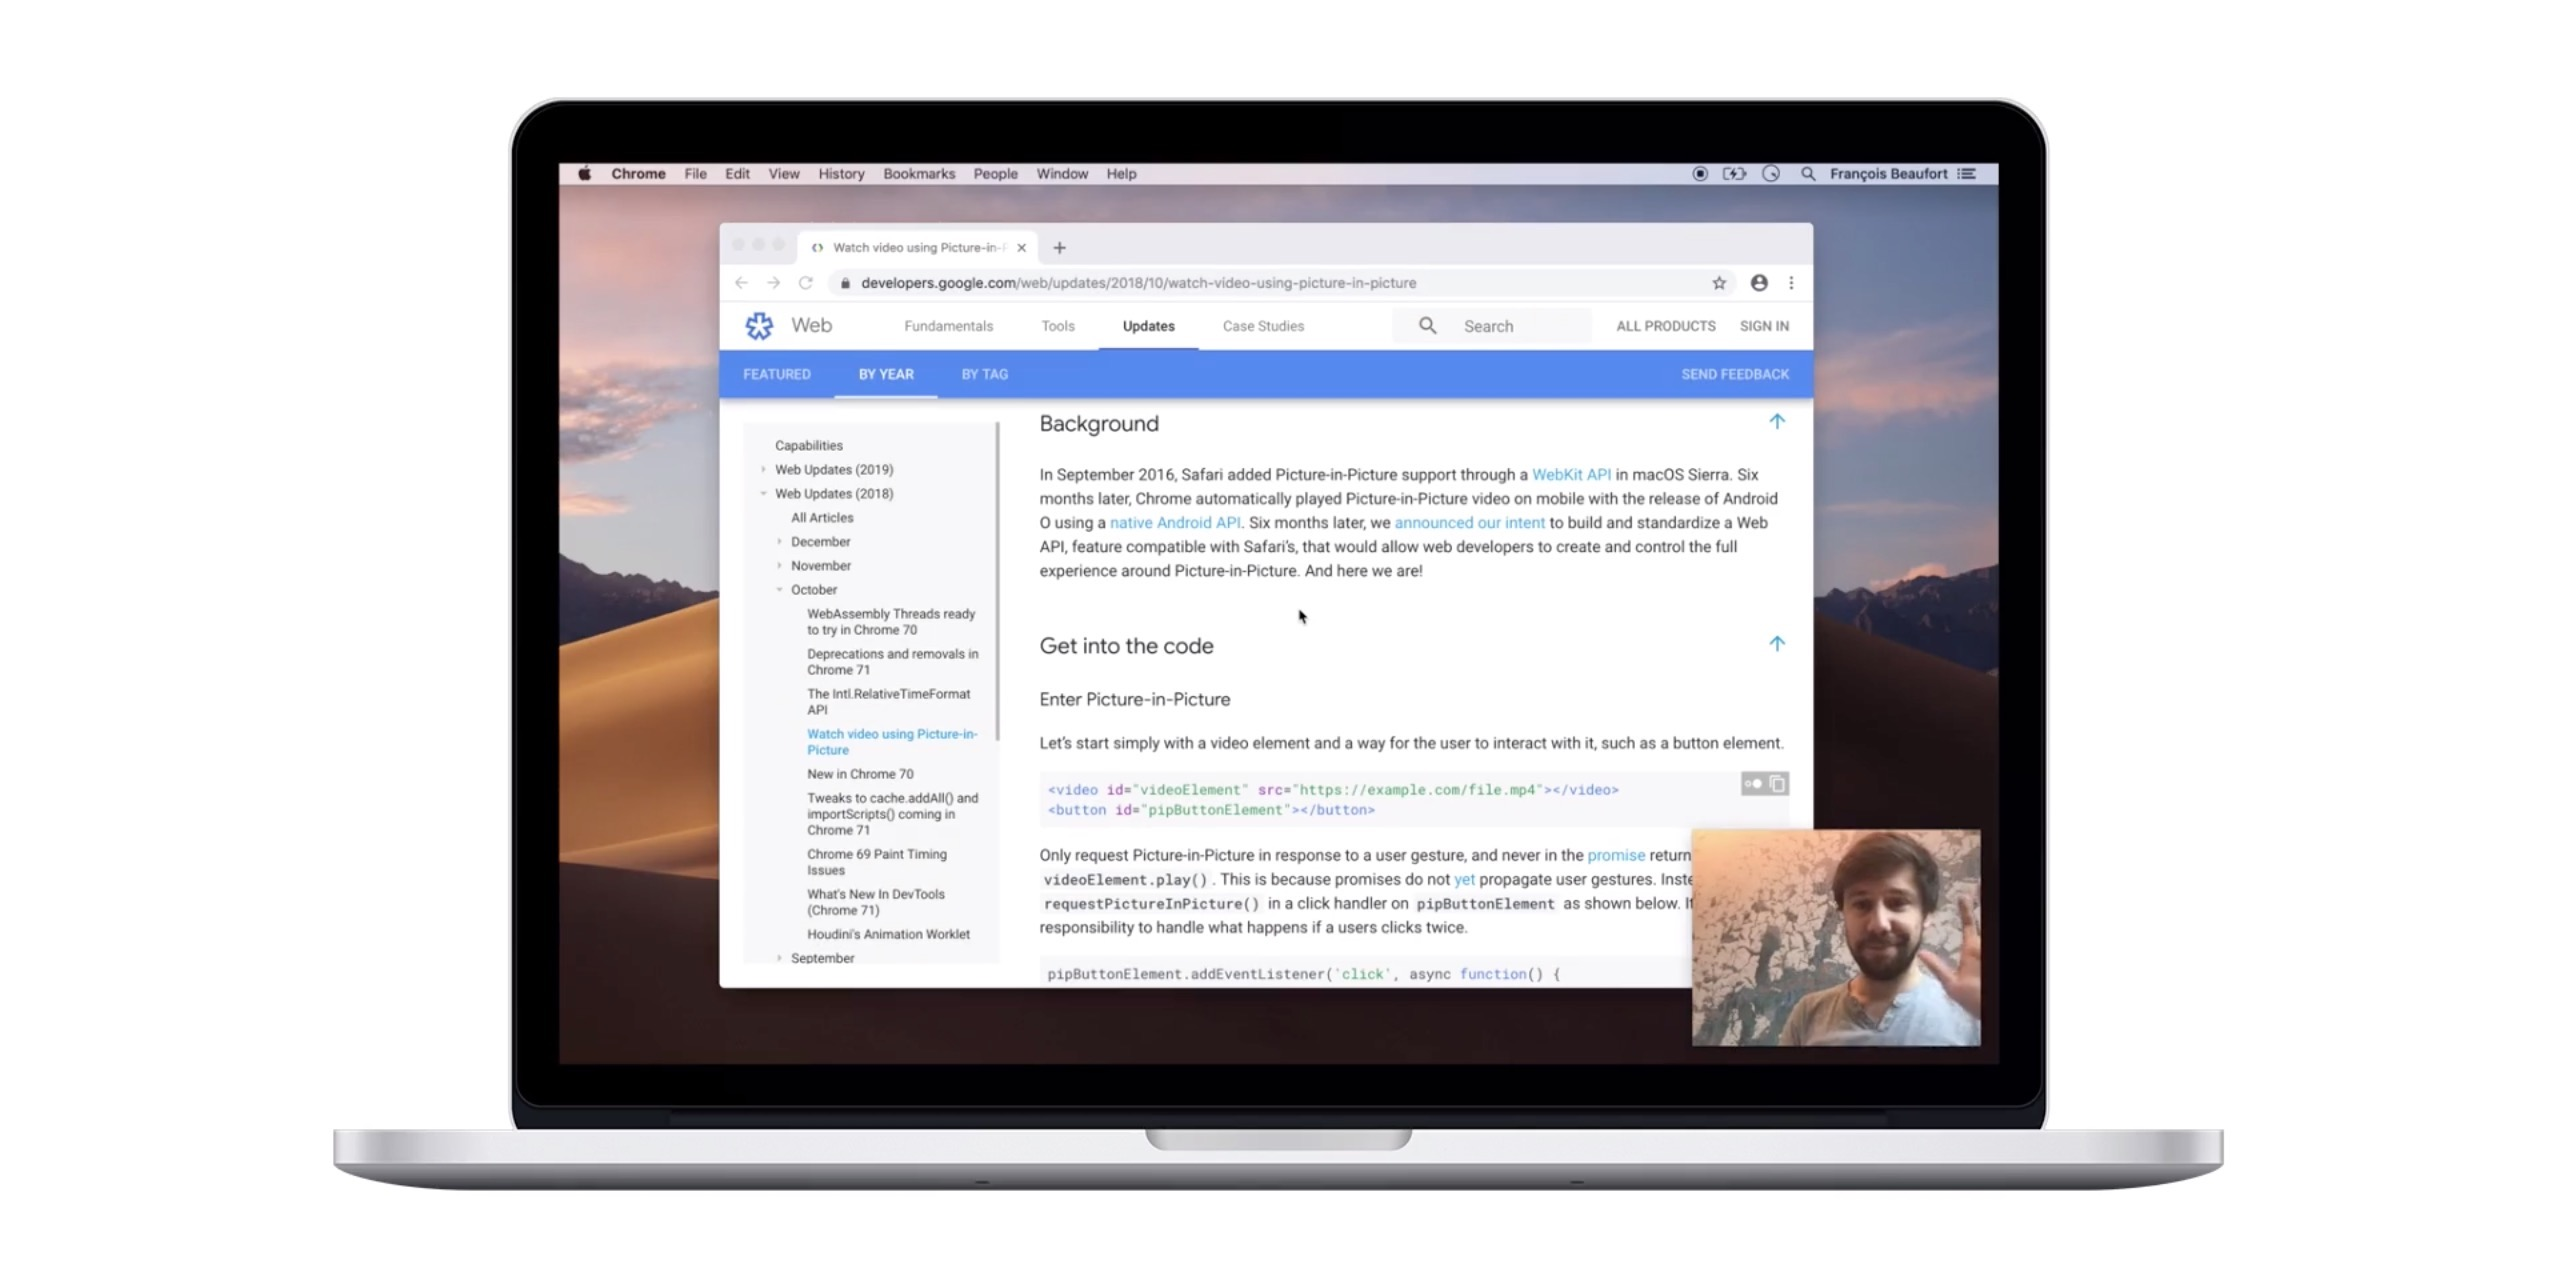 Chrome 73 beta adds new Chrome Sync features, support for Auto PiP